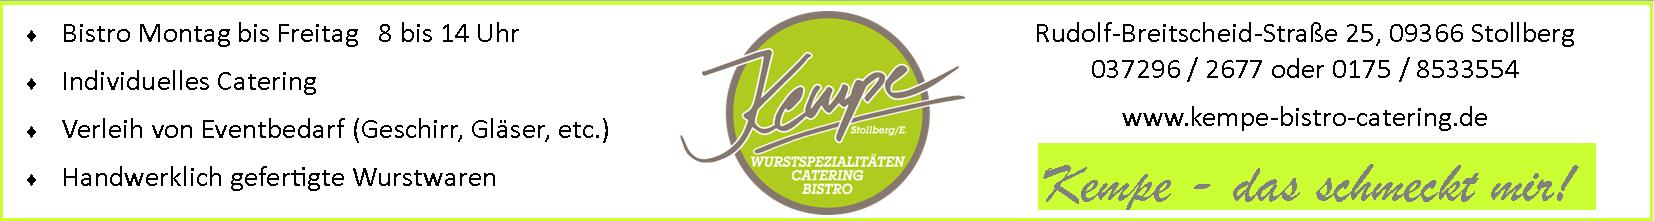 Anzeige Kempe Bistro Catering